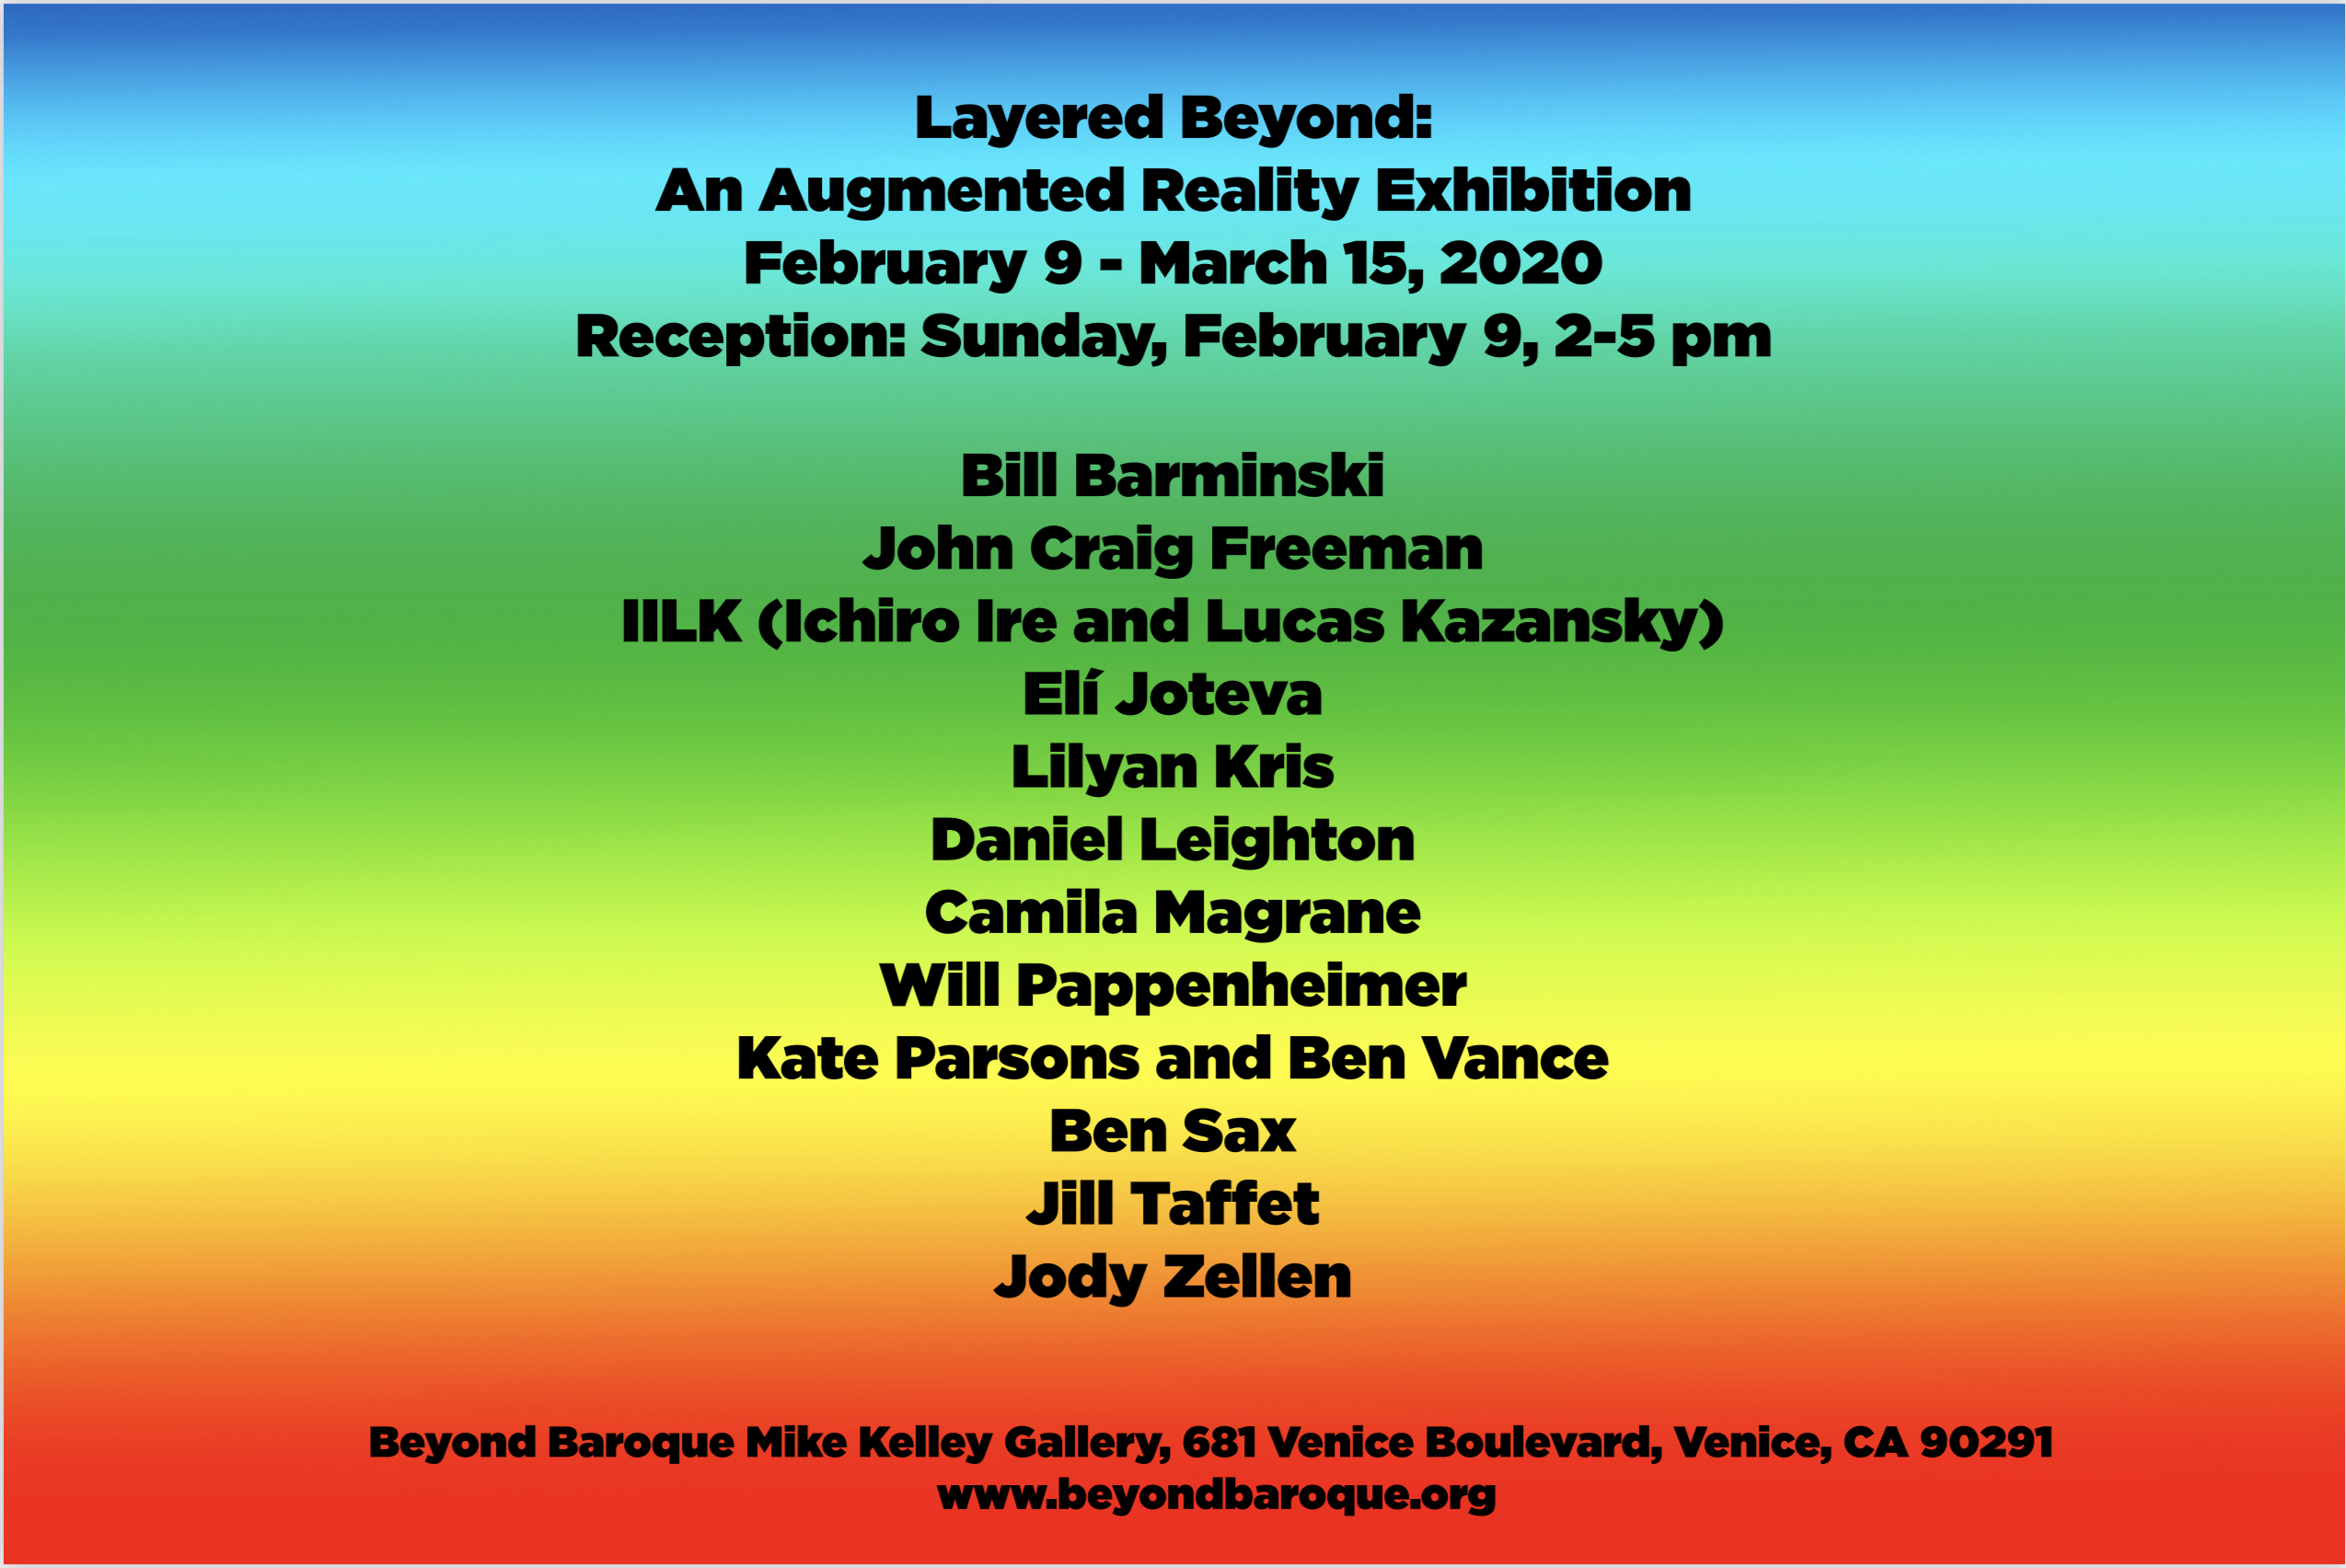 Layered Beyond: An Augmented Reality Art Exhibition